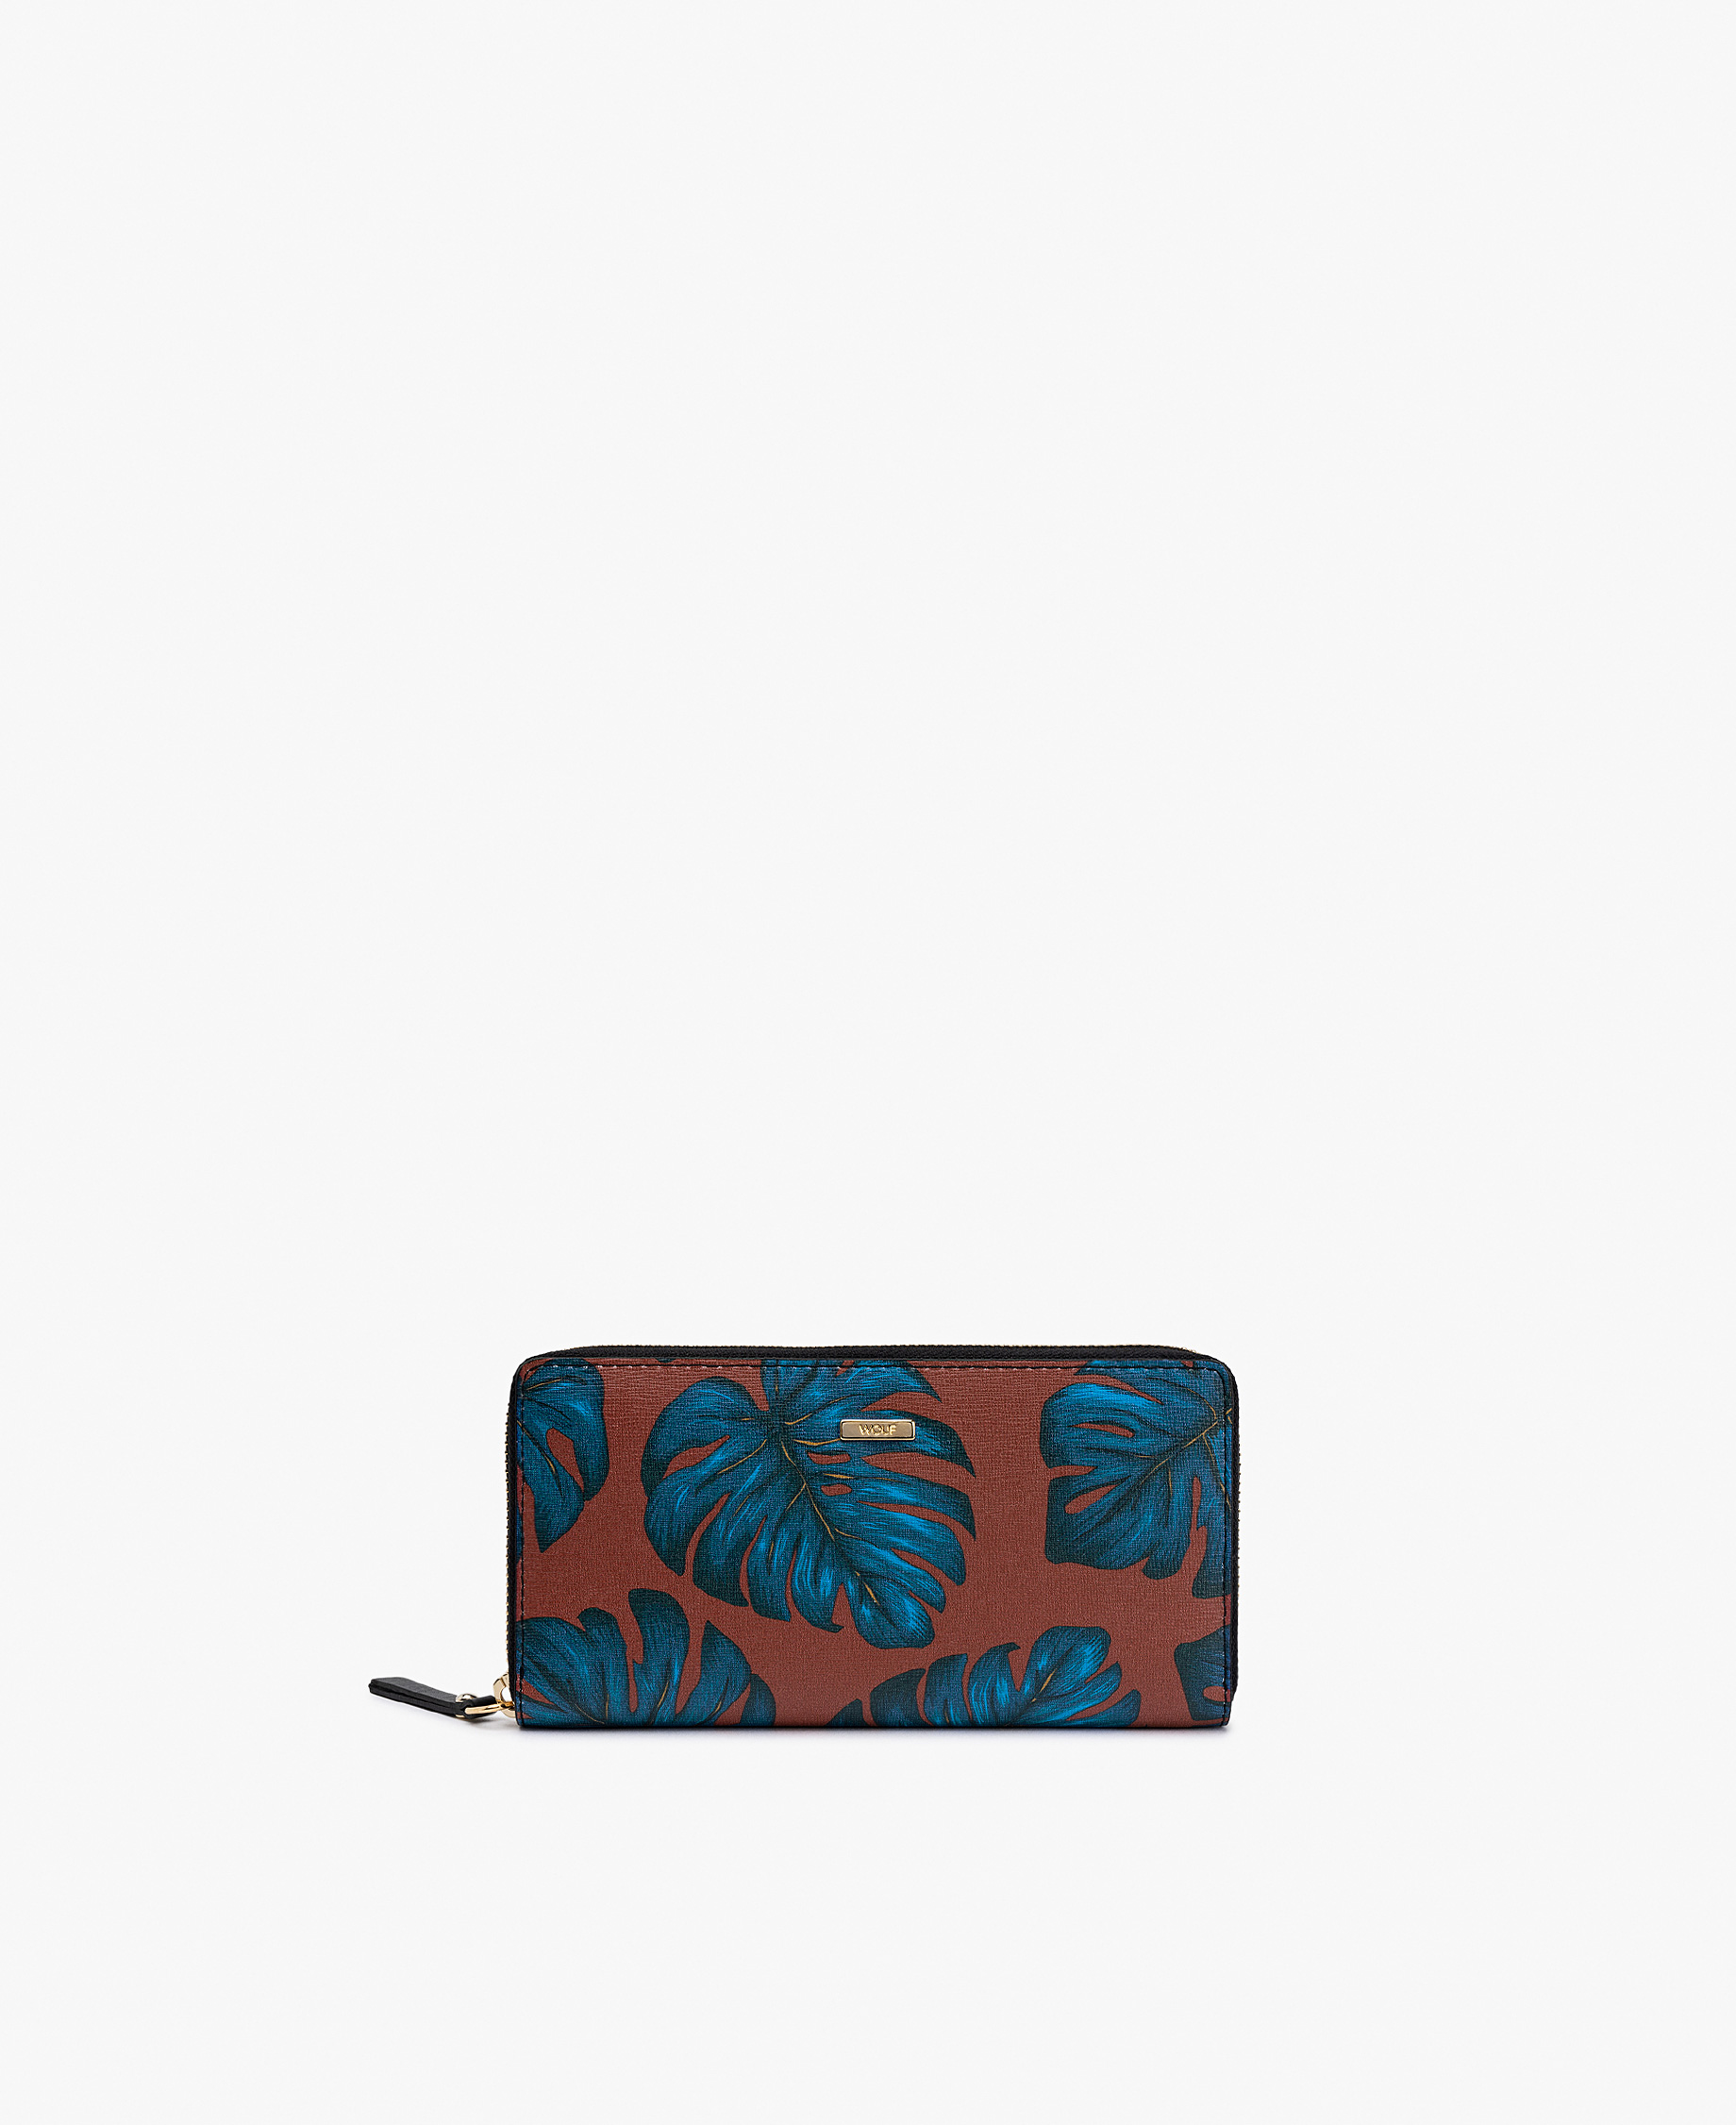 woman leather wallet with leaves